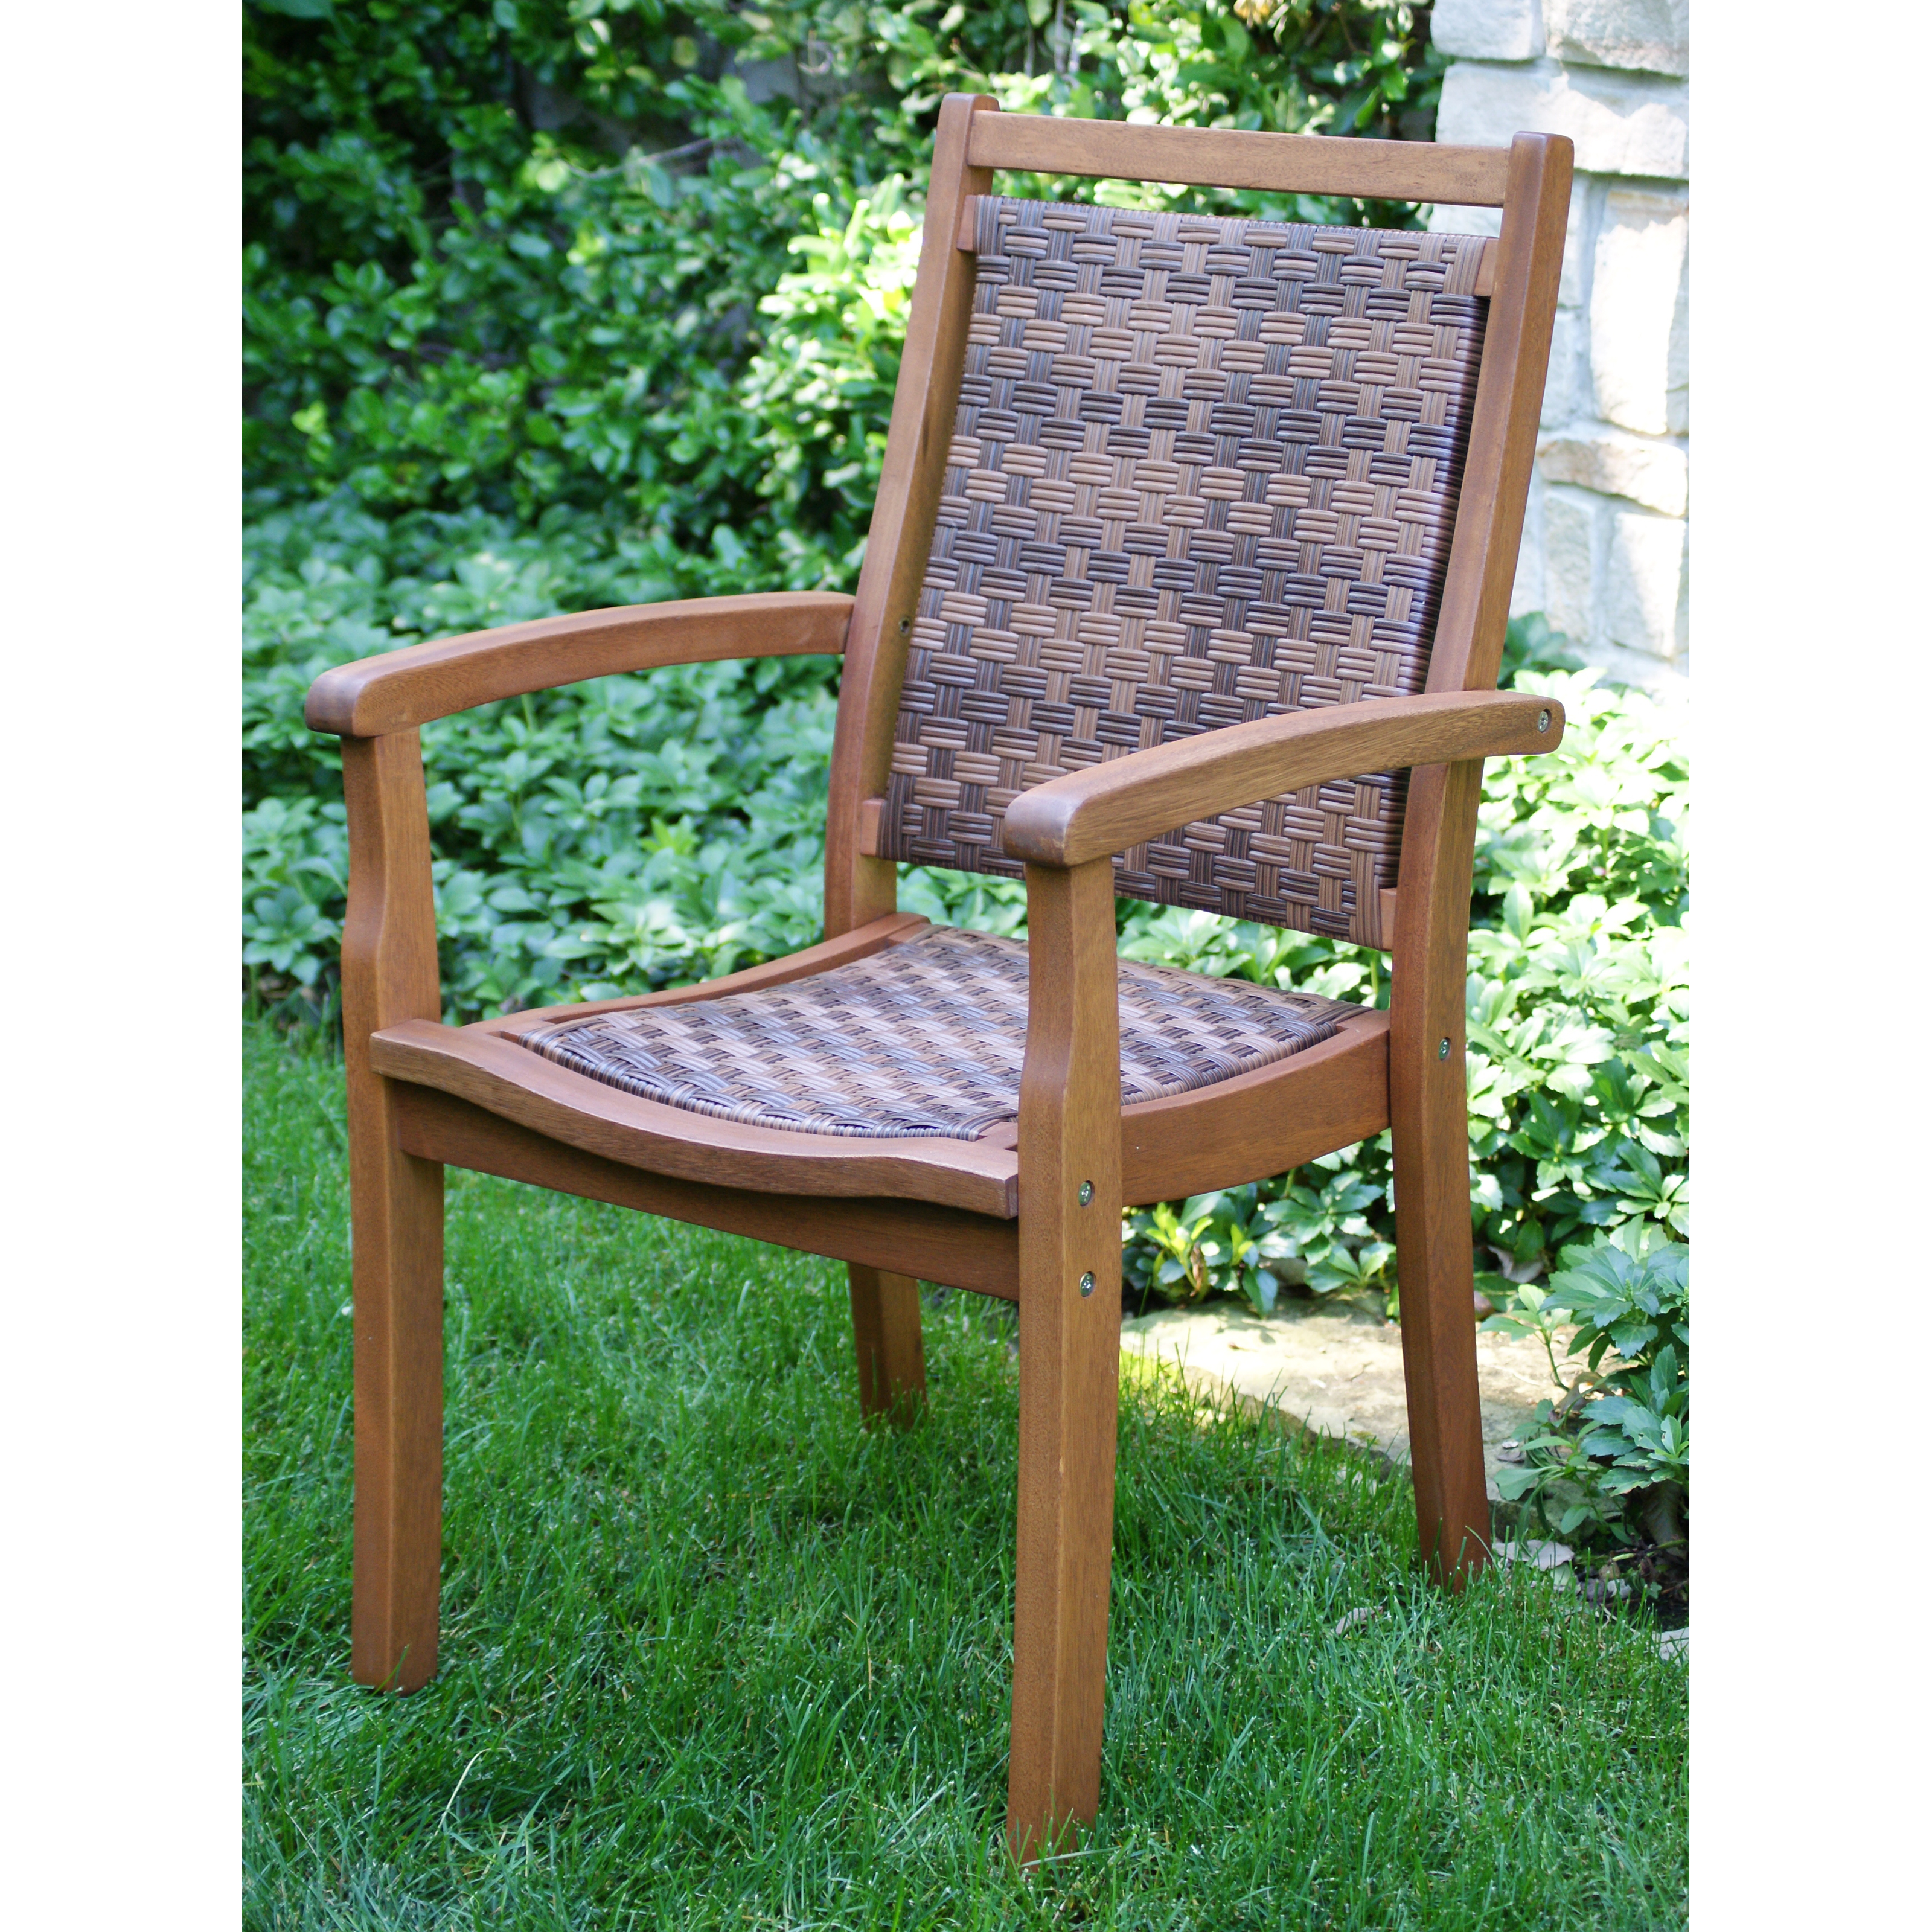 outdoor dining chairs stackable chair cover hire and setup interiors resin wicker